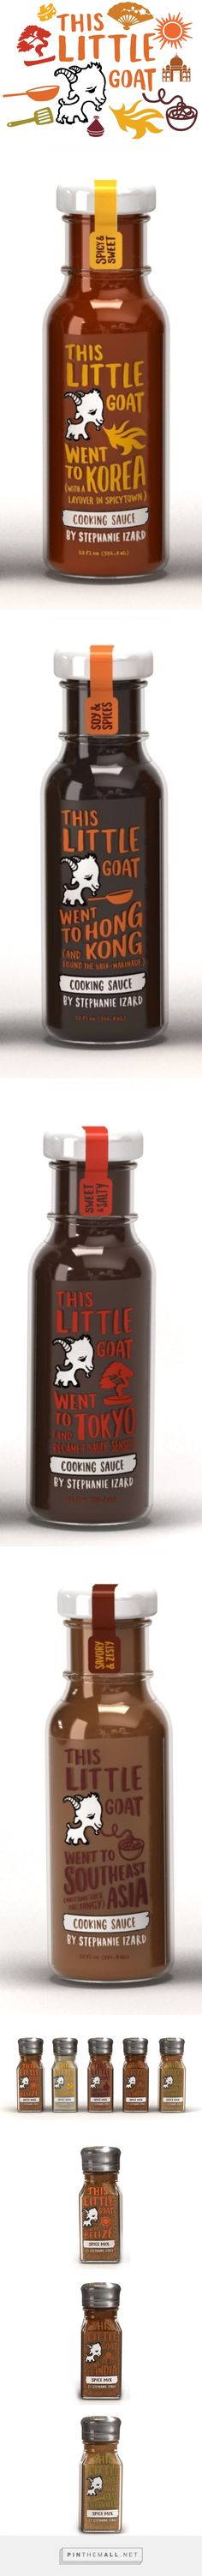 This Little Goat cooking sauces and spices—fun copy on each bottle. www.thislittlegoat.com.